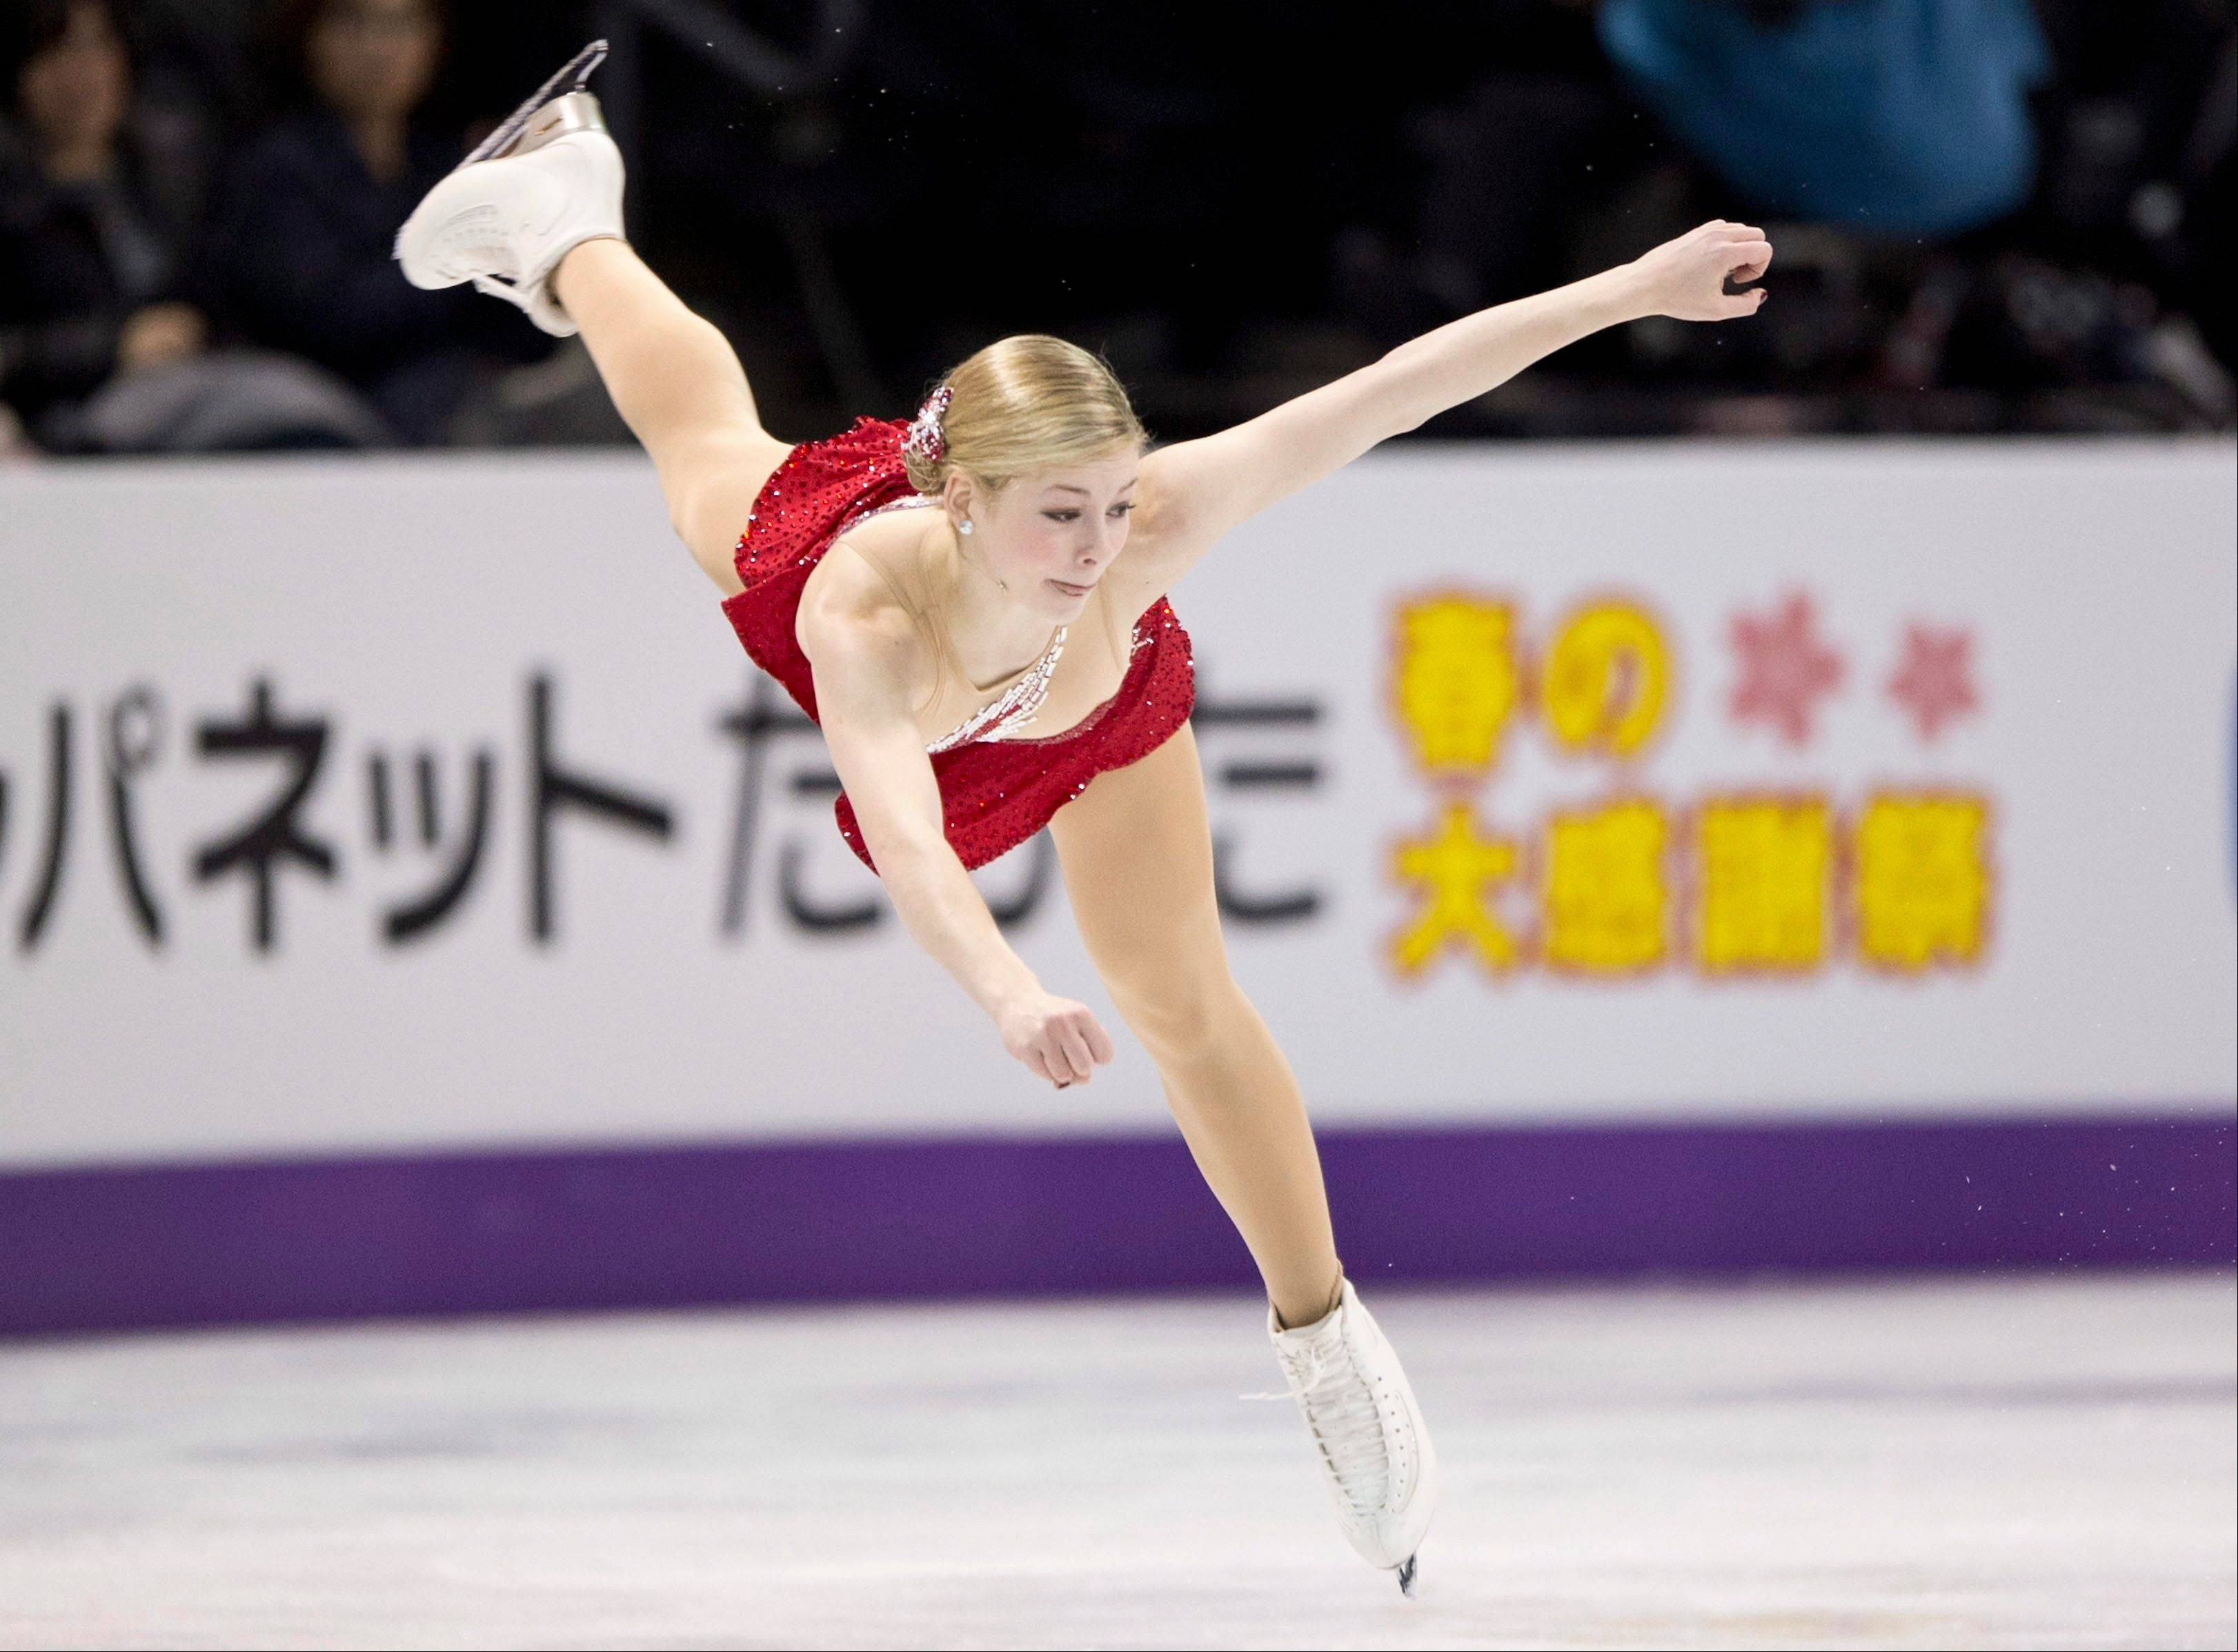 Gracie Gold, from the United States, performs her routine during the ladies short program at the World Figure Skating Championships Thursday, March 14, 2013, in London, Ontario.